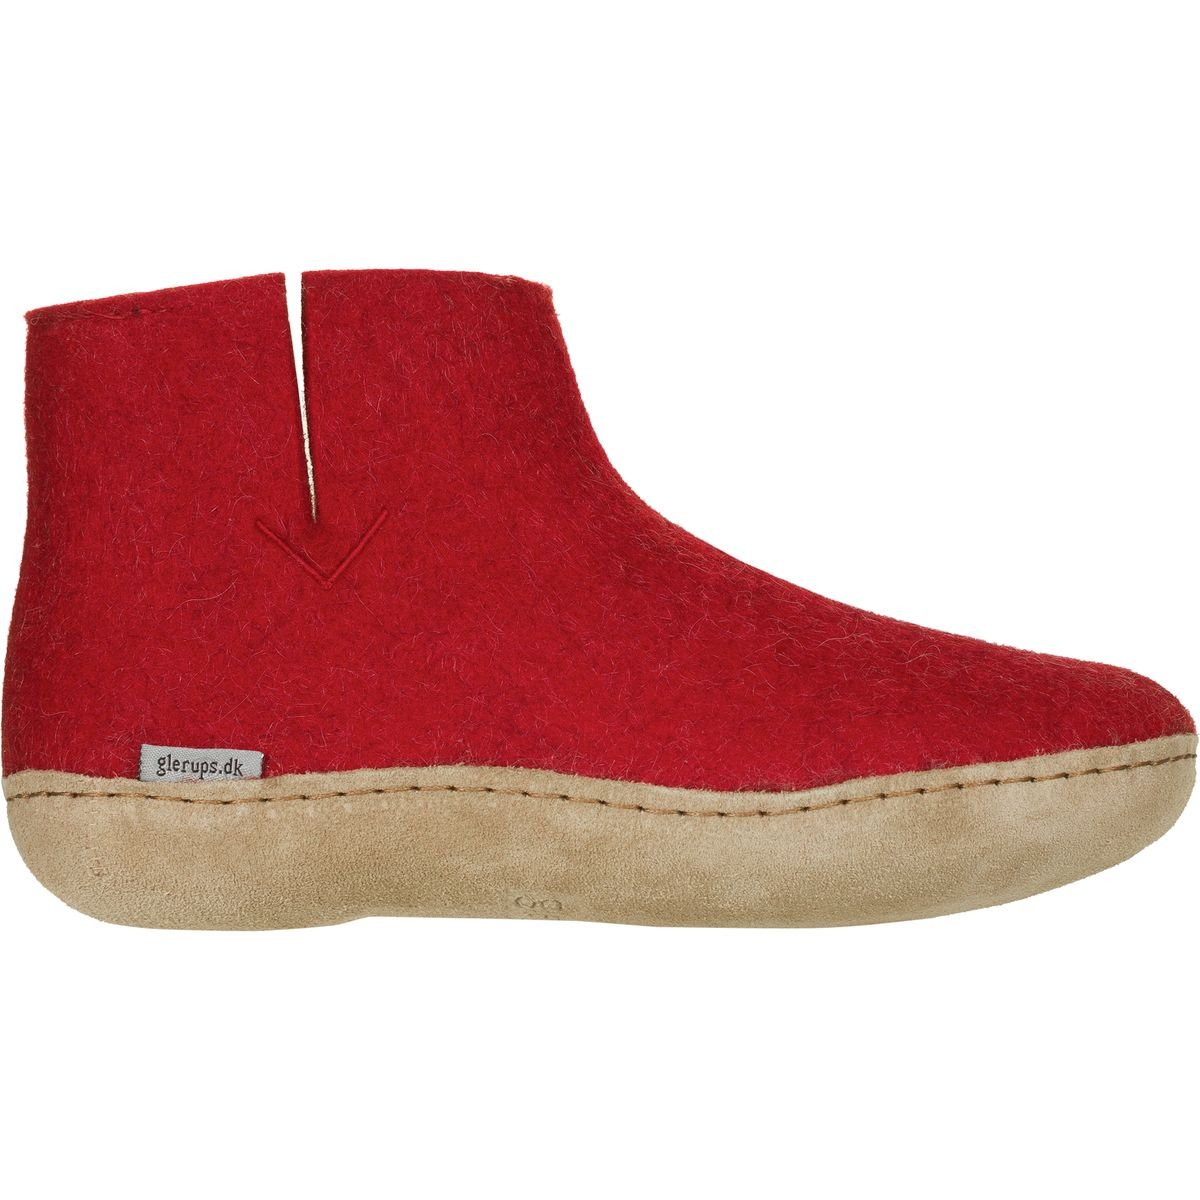 Glerups Woman High Slippers Red 4Sufocyx